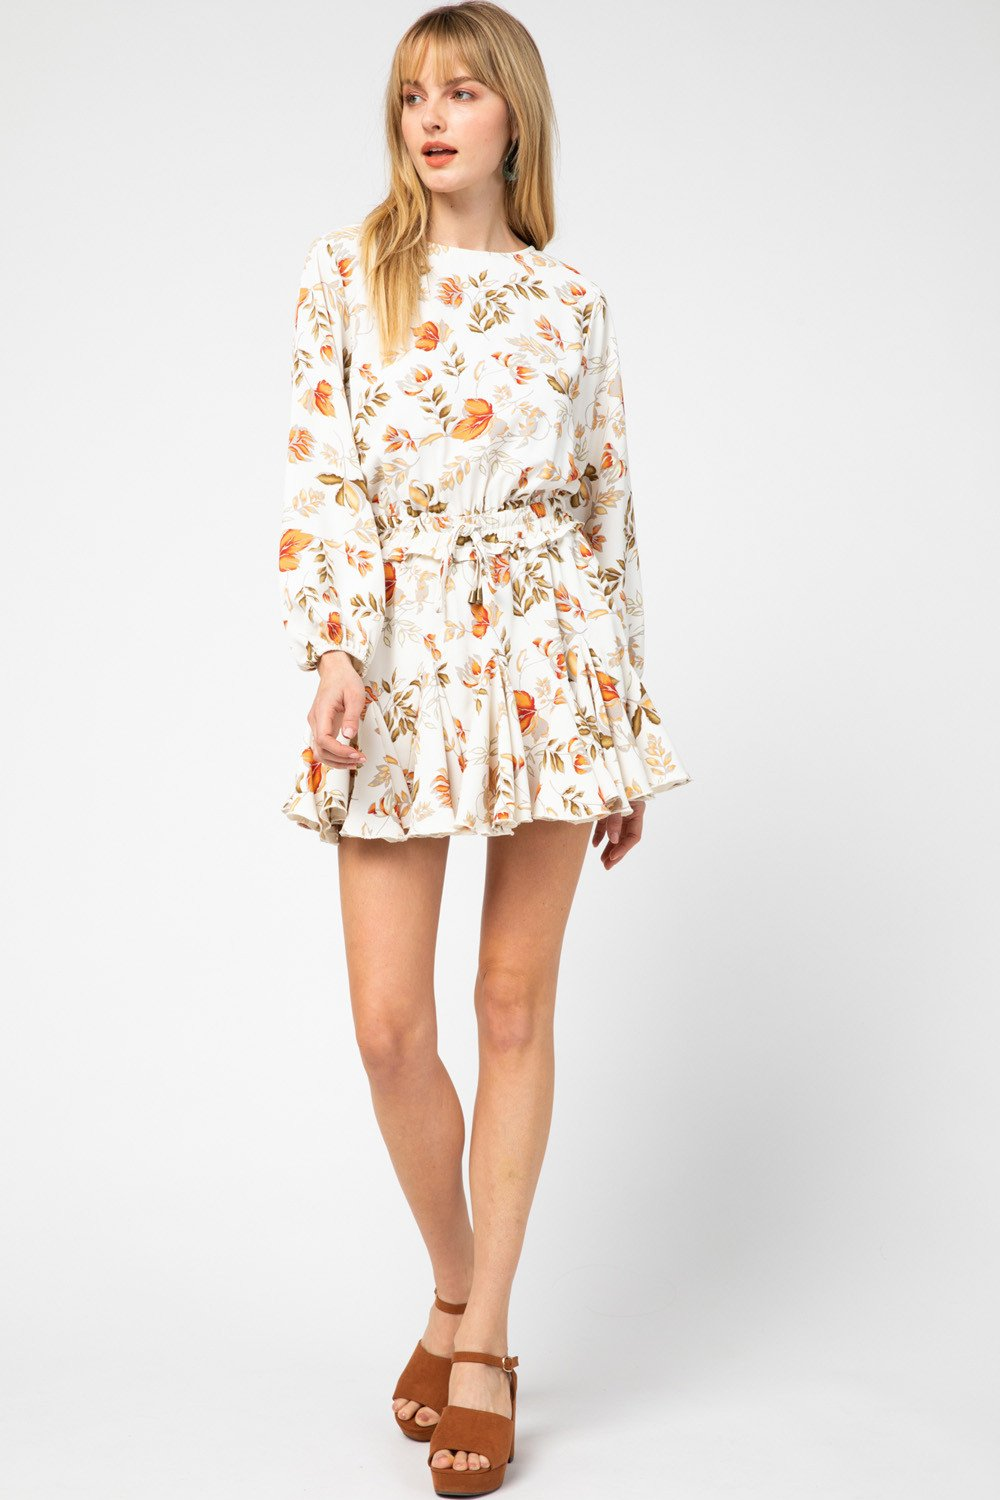 Emma Floral Drawstring Romper / Dress (looks like a dress)